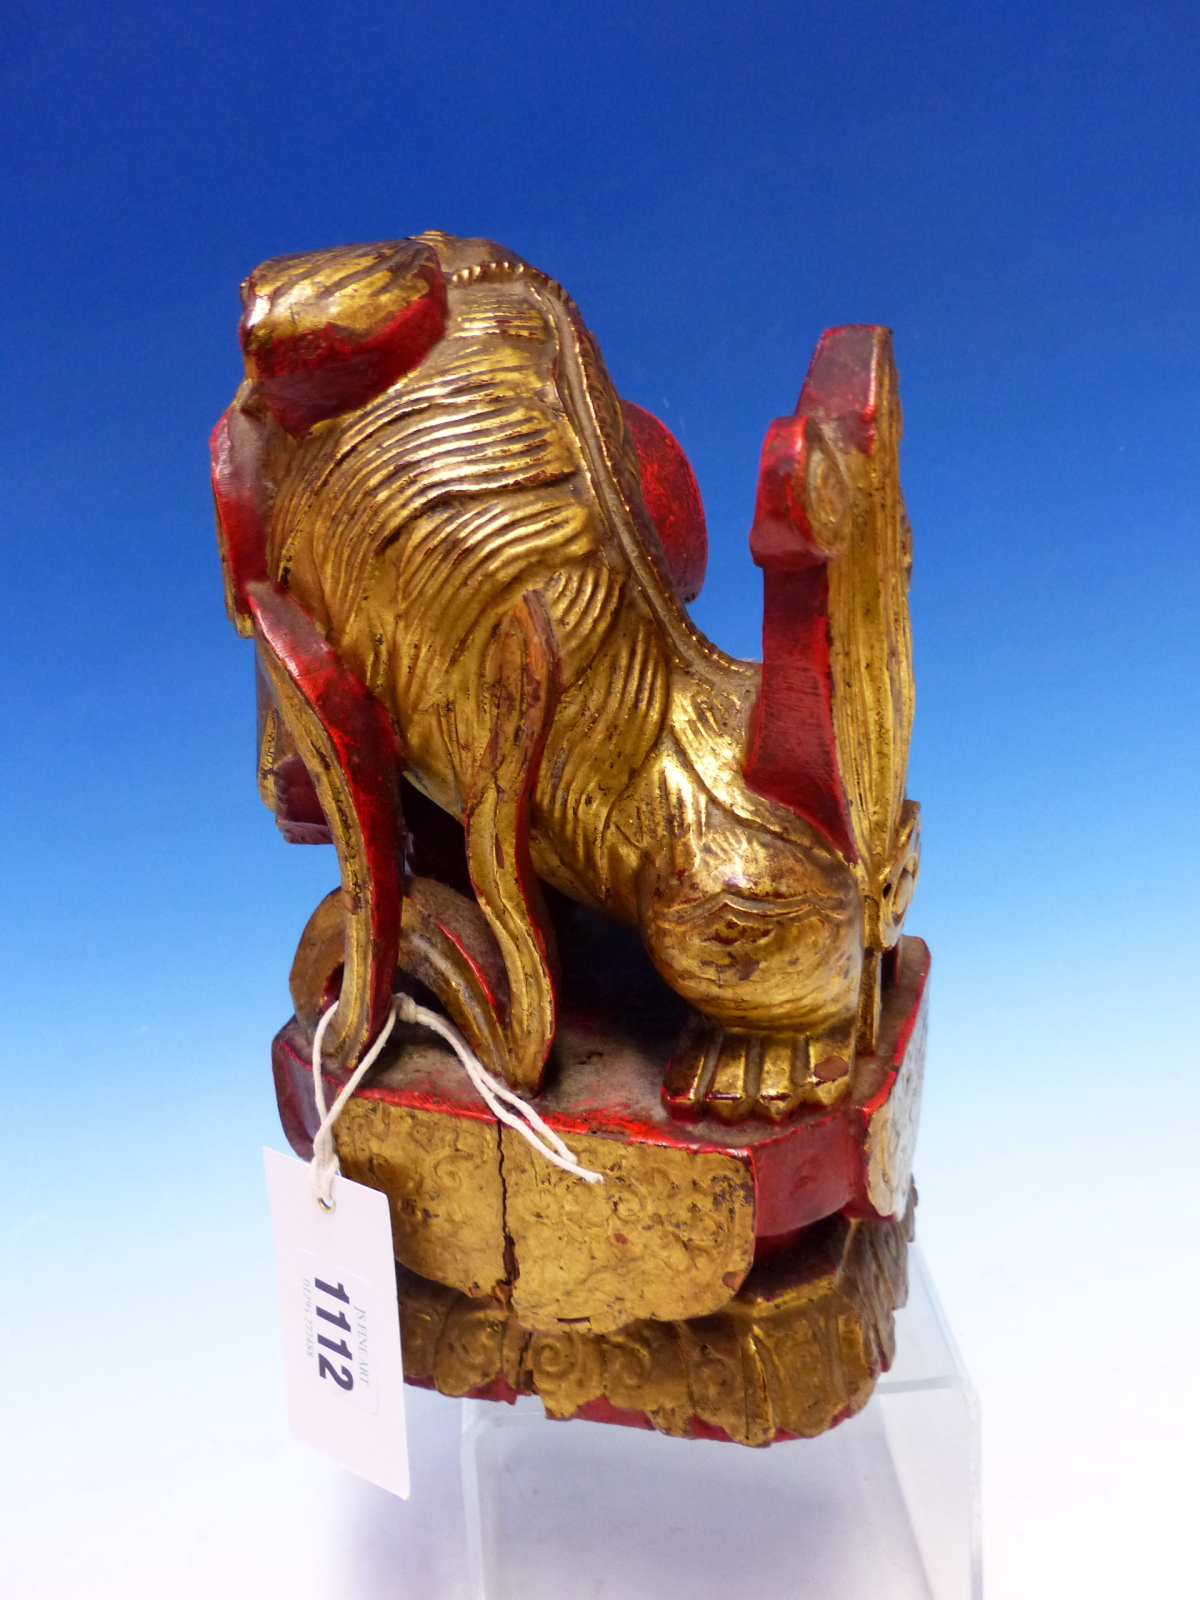 A CHINESE CARVED WOOD LION SEATED WITH A BROCADE BALL PARCEL GILT ON A RED LACQUER GROUND. H 23cms. - Image 4 of 5